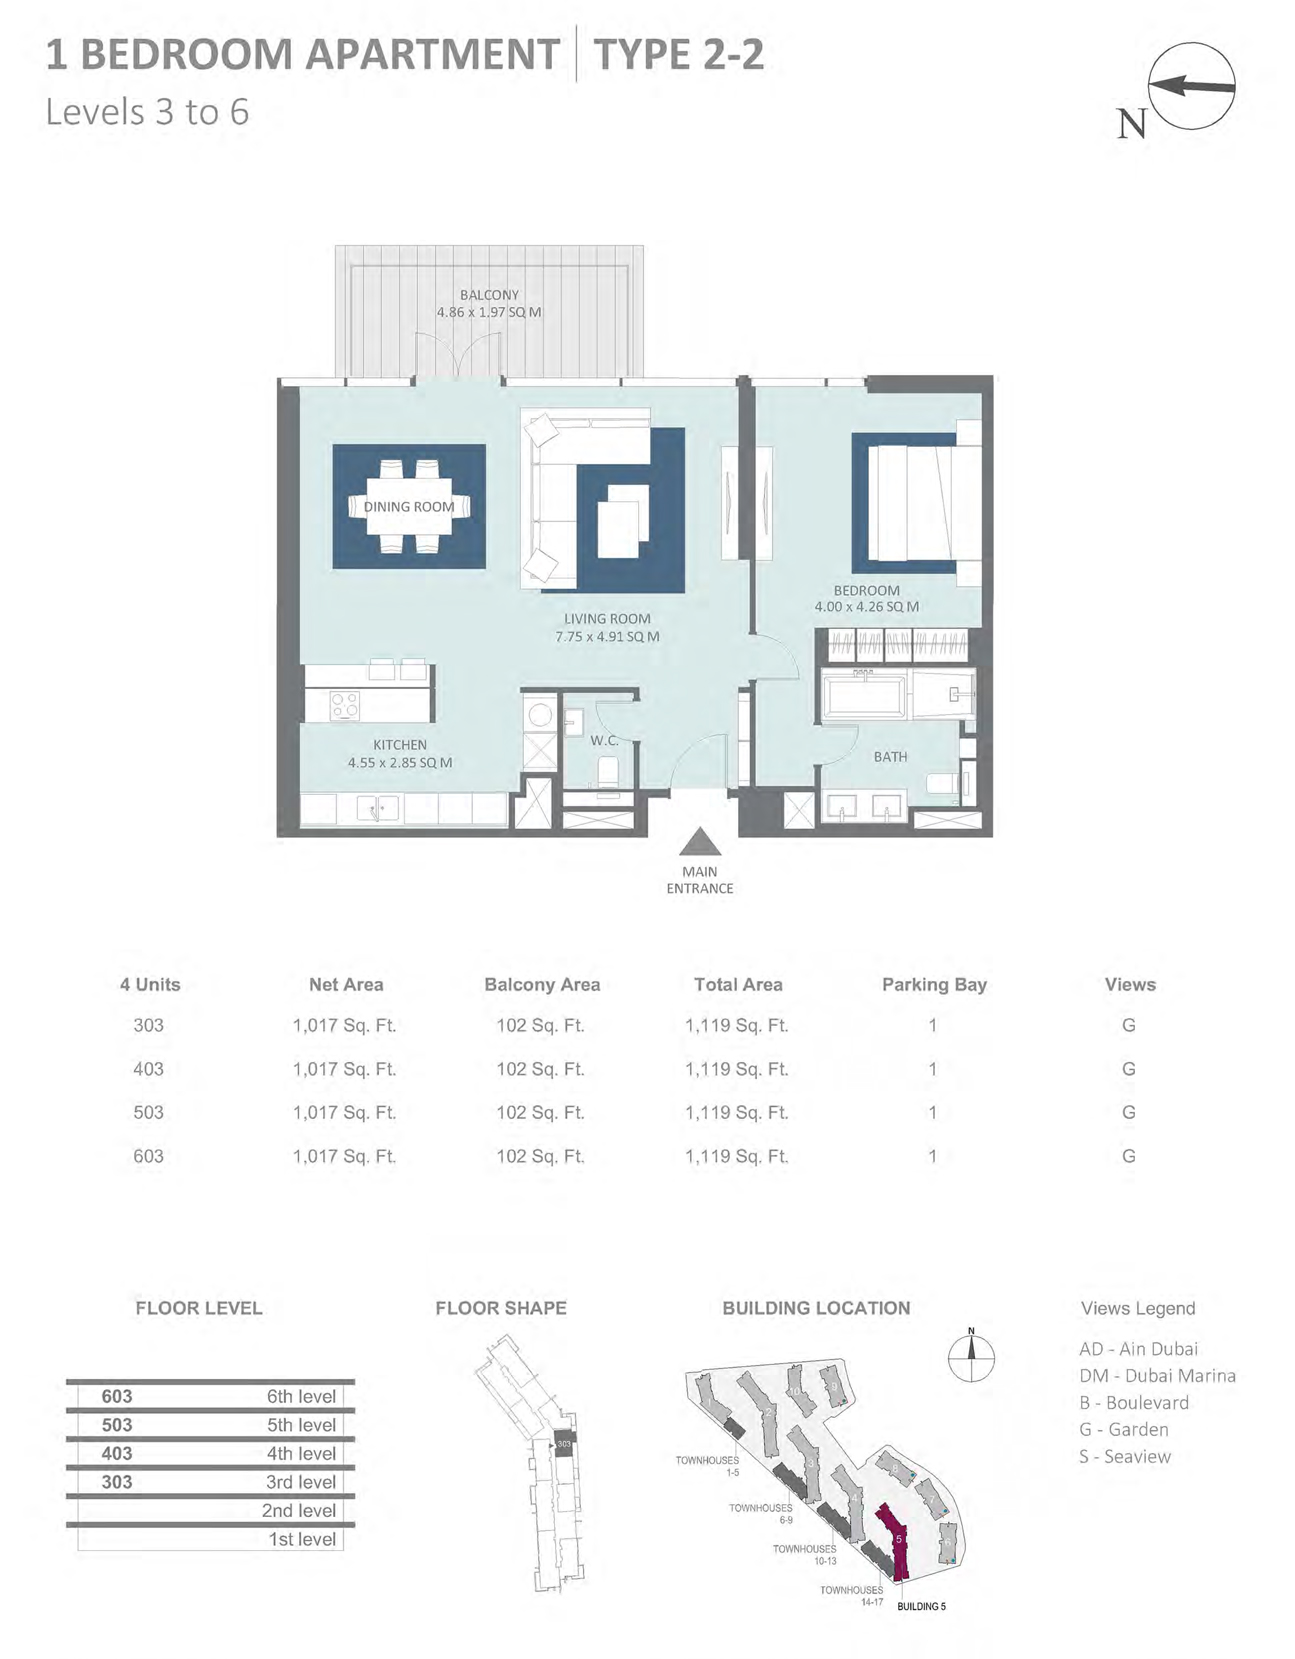 Building 5 - 1 Bedroom Type 2-2 Level 3-6 , Size 1119    sq. ft.